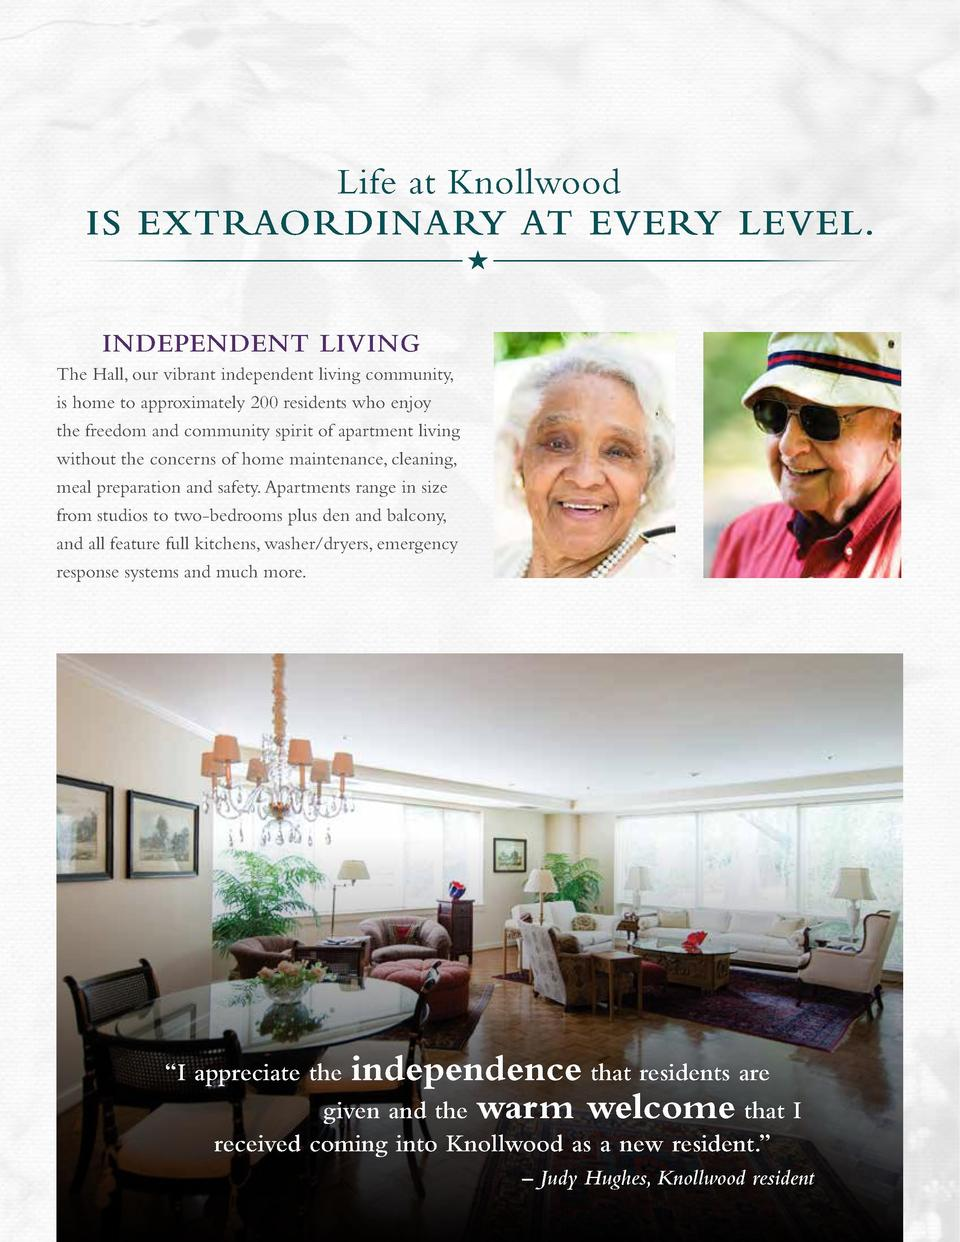 I Life at Knollwood is extraordinary at every level.  n addition to independent living, Knollwood offers three higher leve...